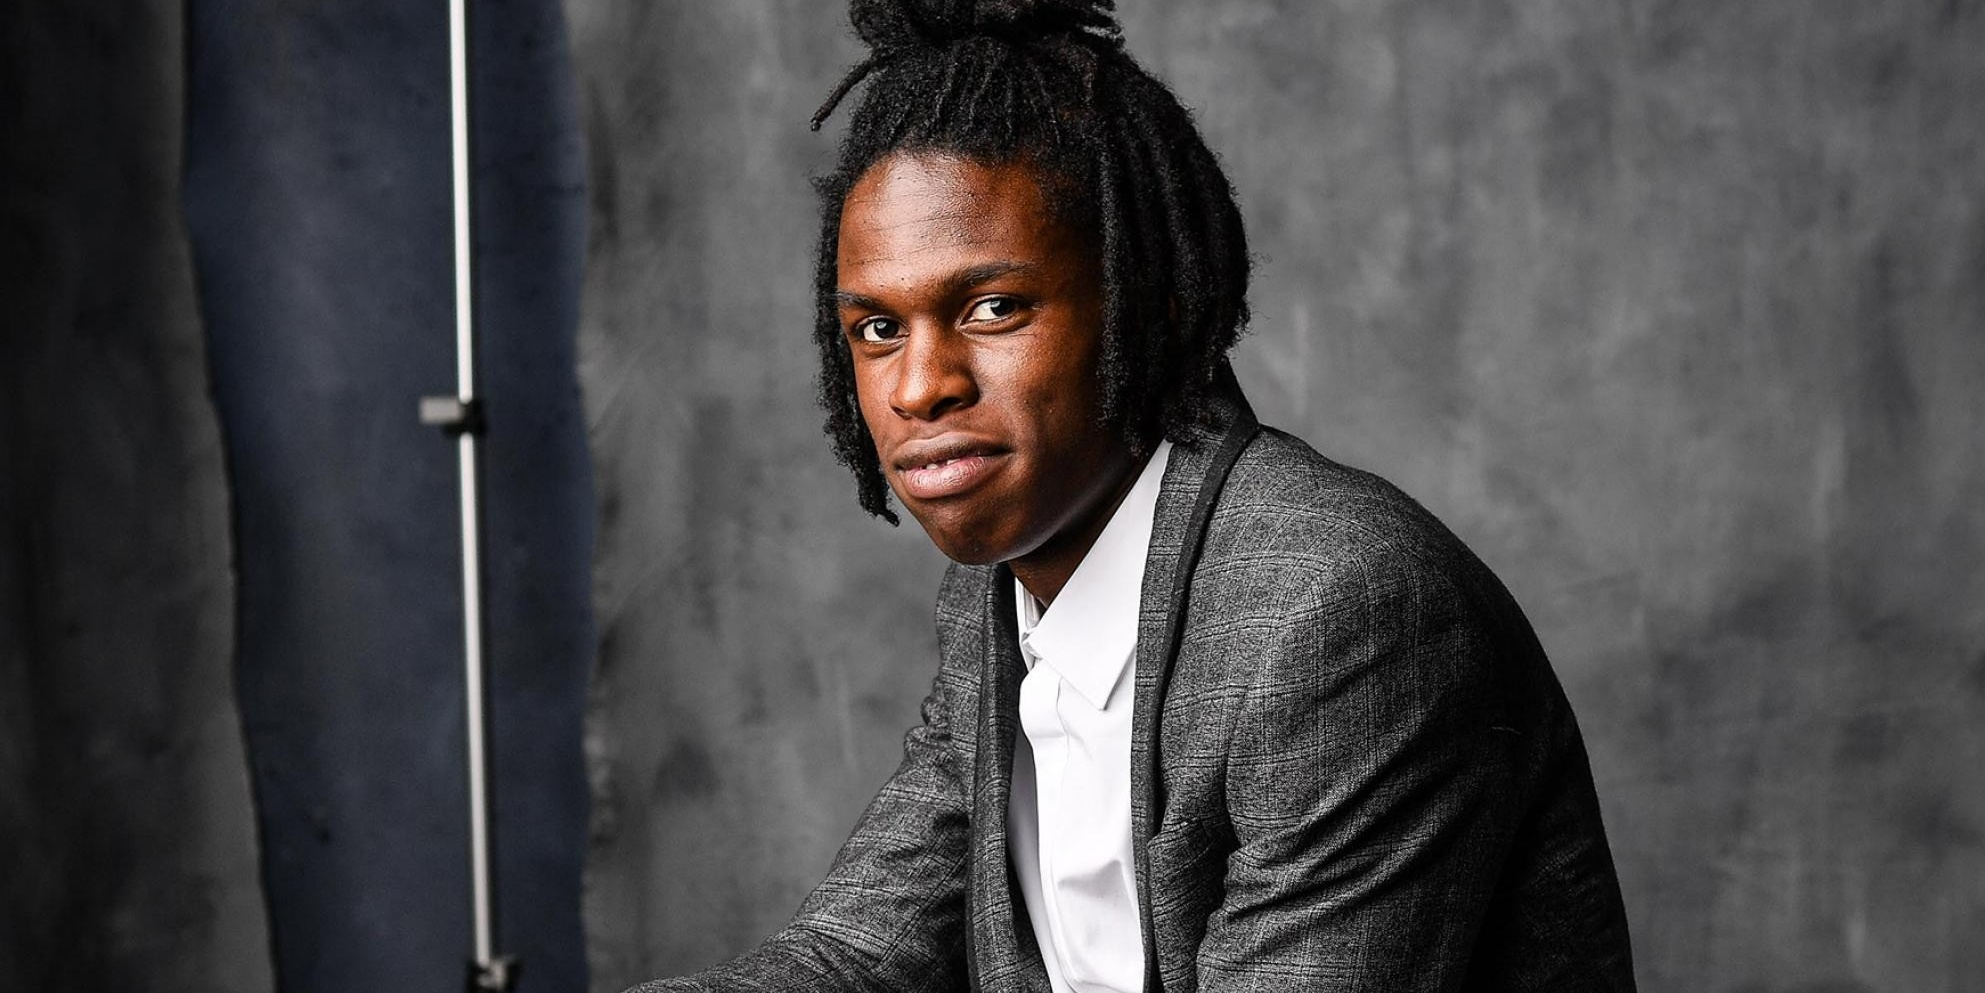 Daniel Caesar's second Singapore show is now sold out as well